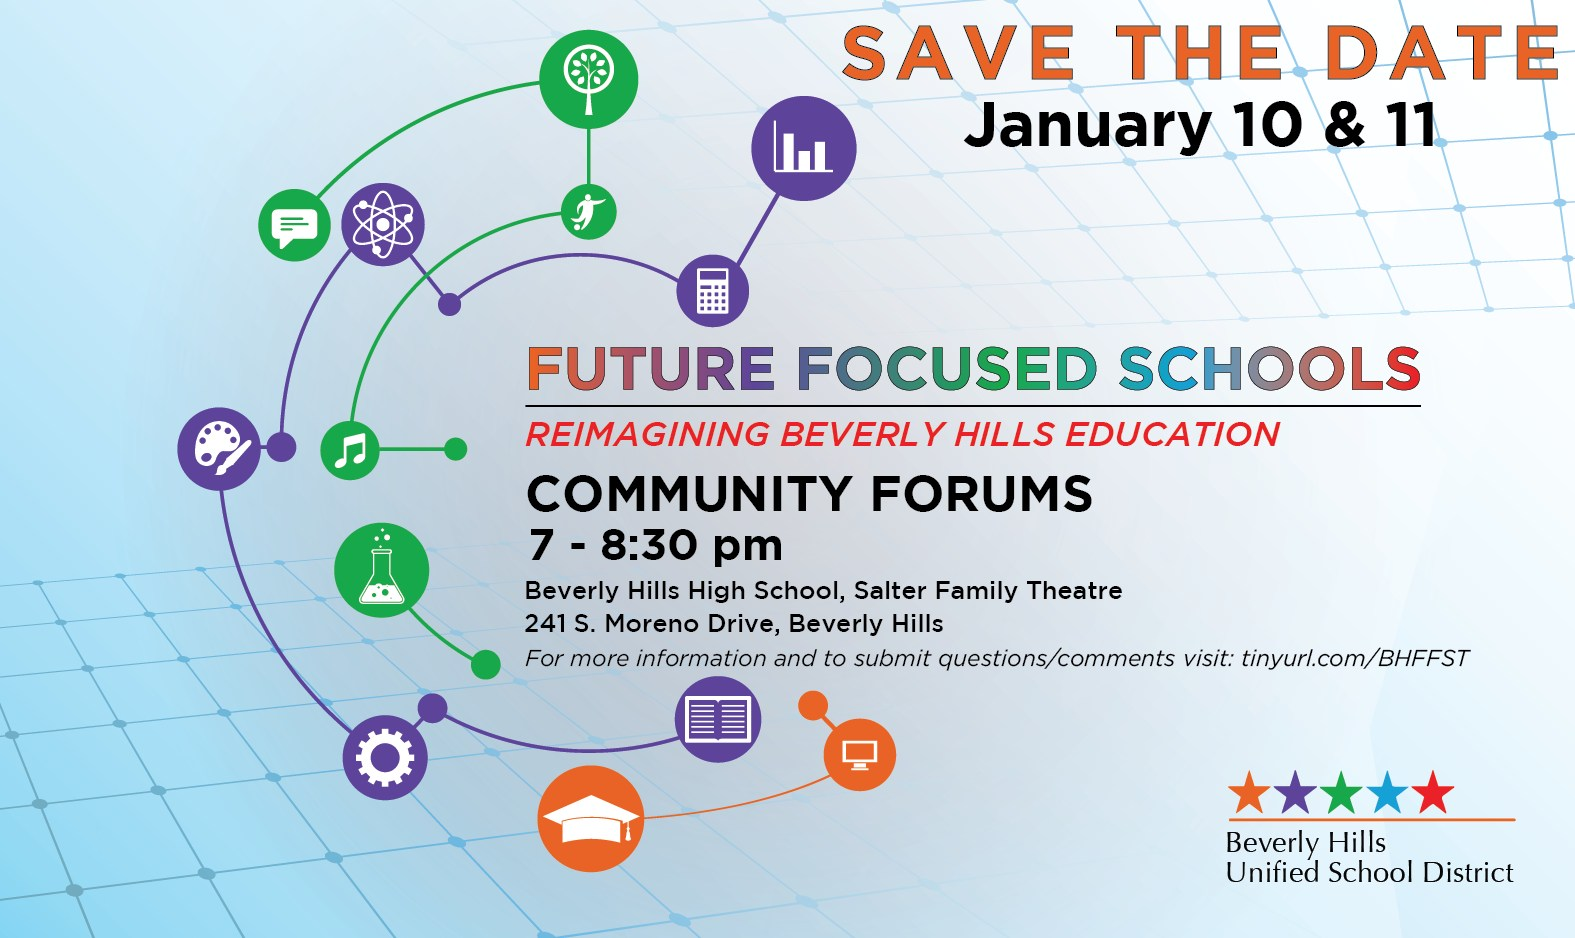 Community Forum Save the Date